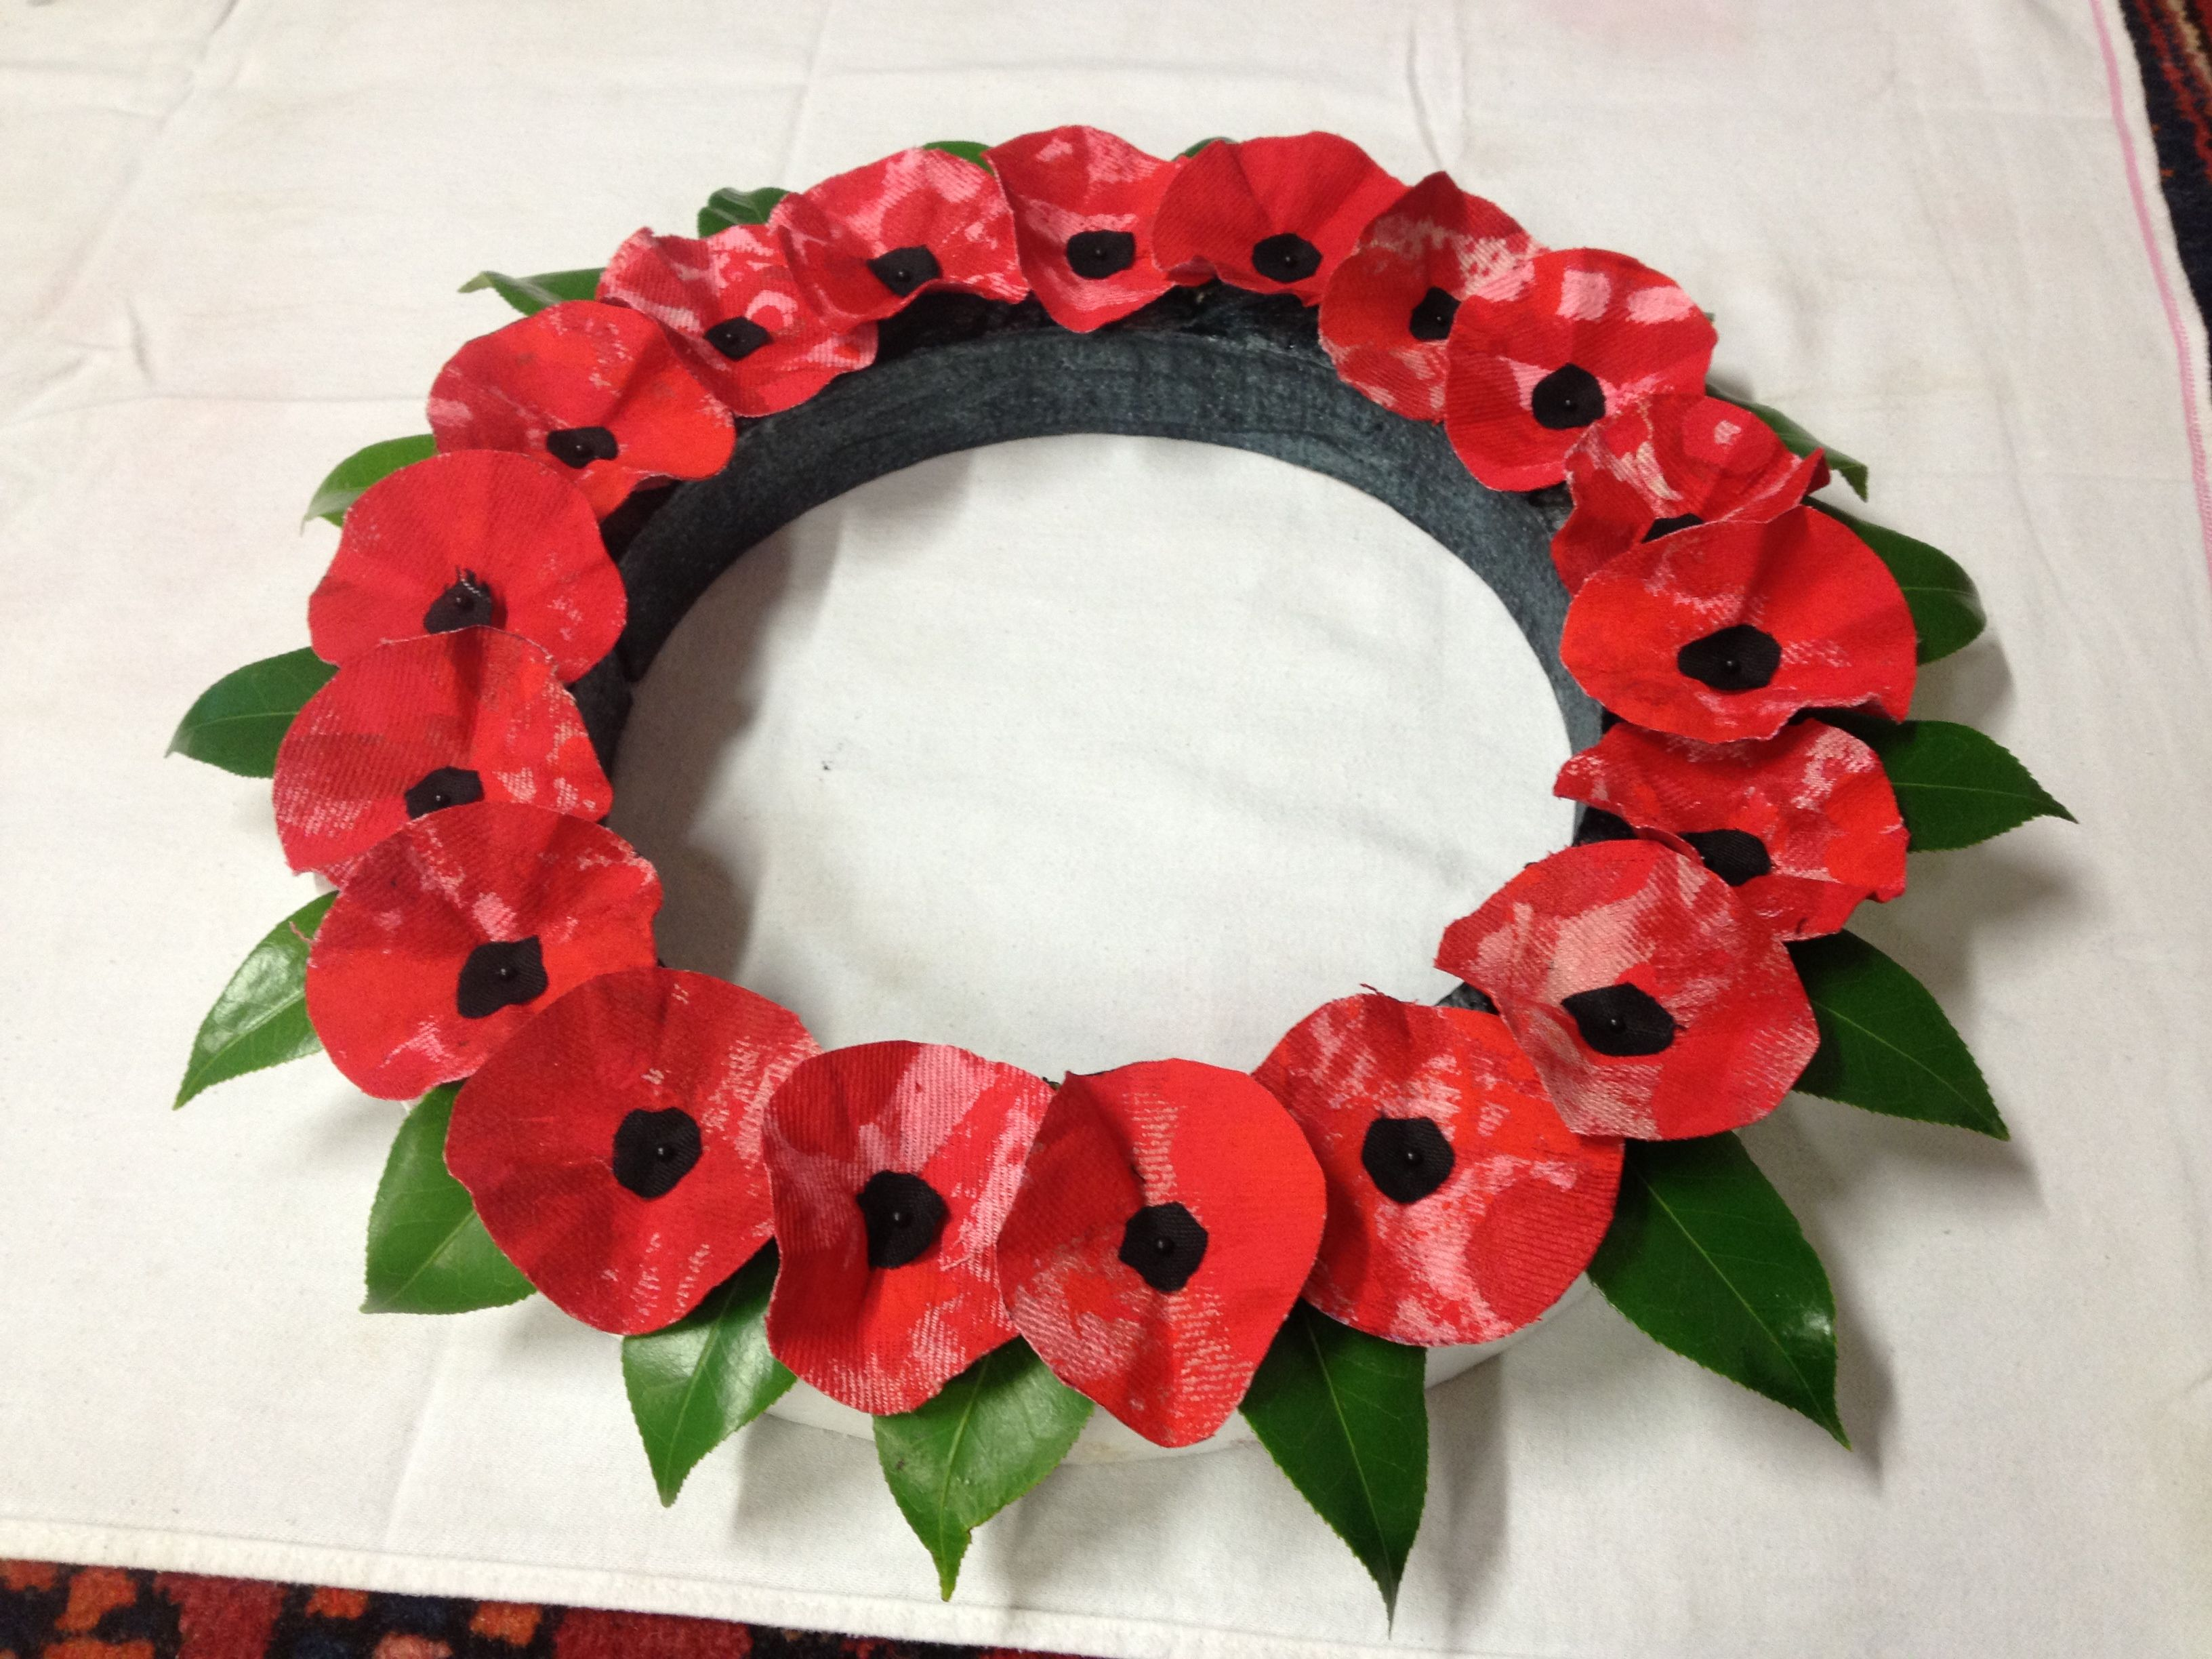 54 best nov 11 poppies images on pinterest poppies lest we